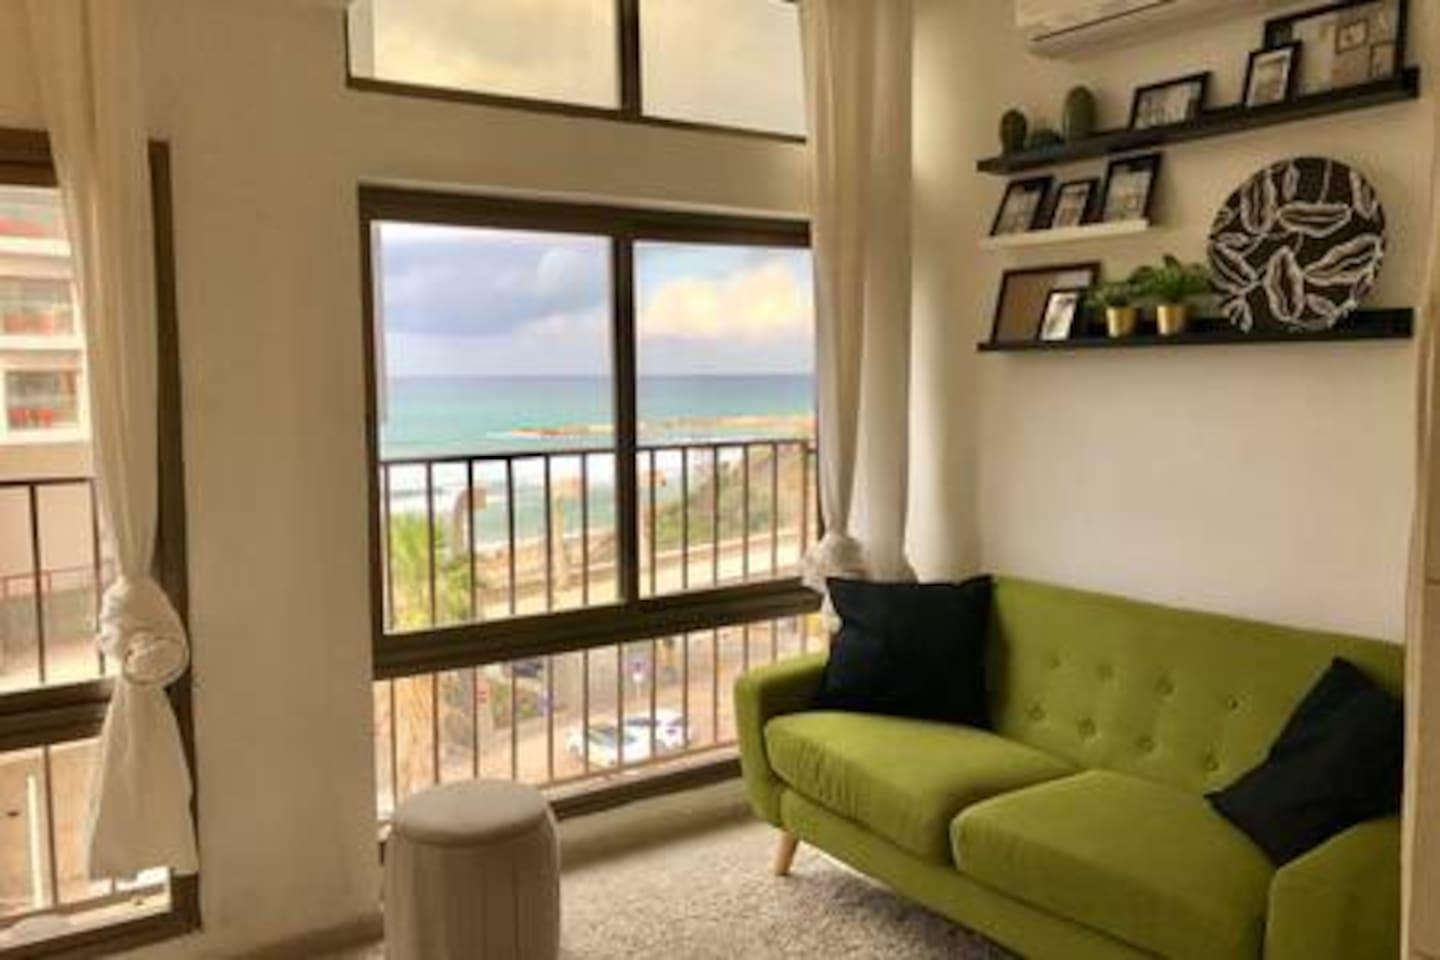 Sea View tropical designed apt in front of Hilton photo 22820555